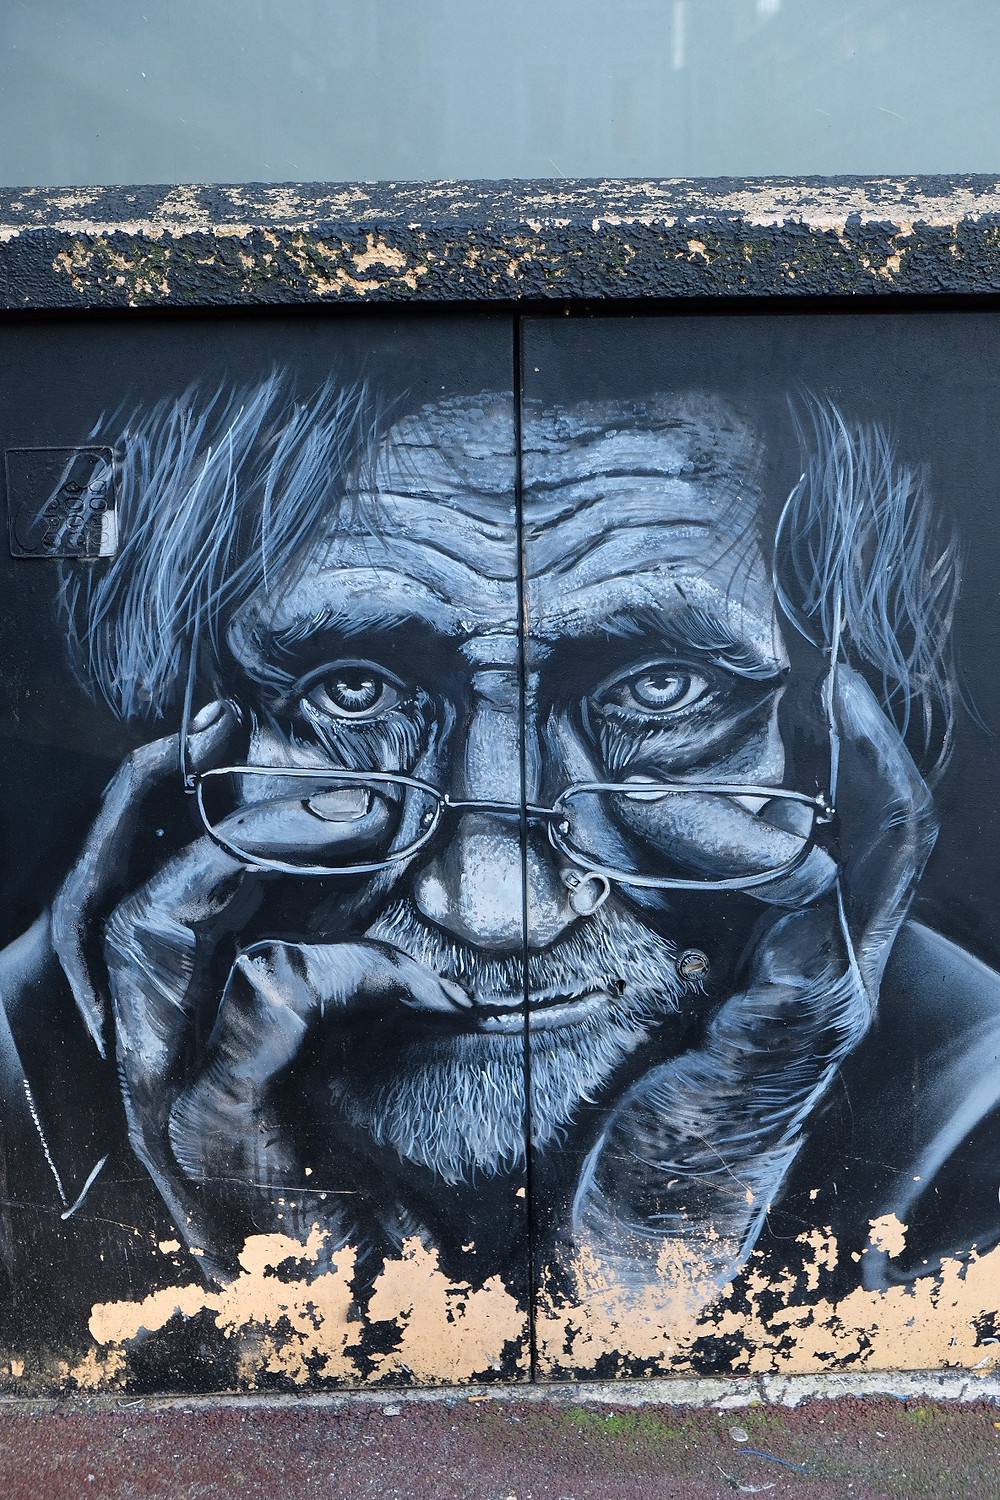 Street Art by Gaawouel in Boulogne-sur-Mer, France